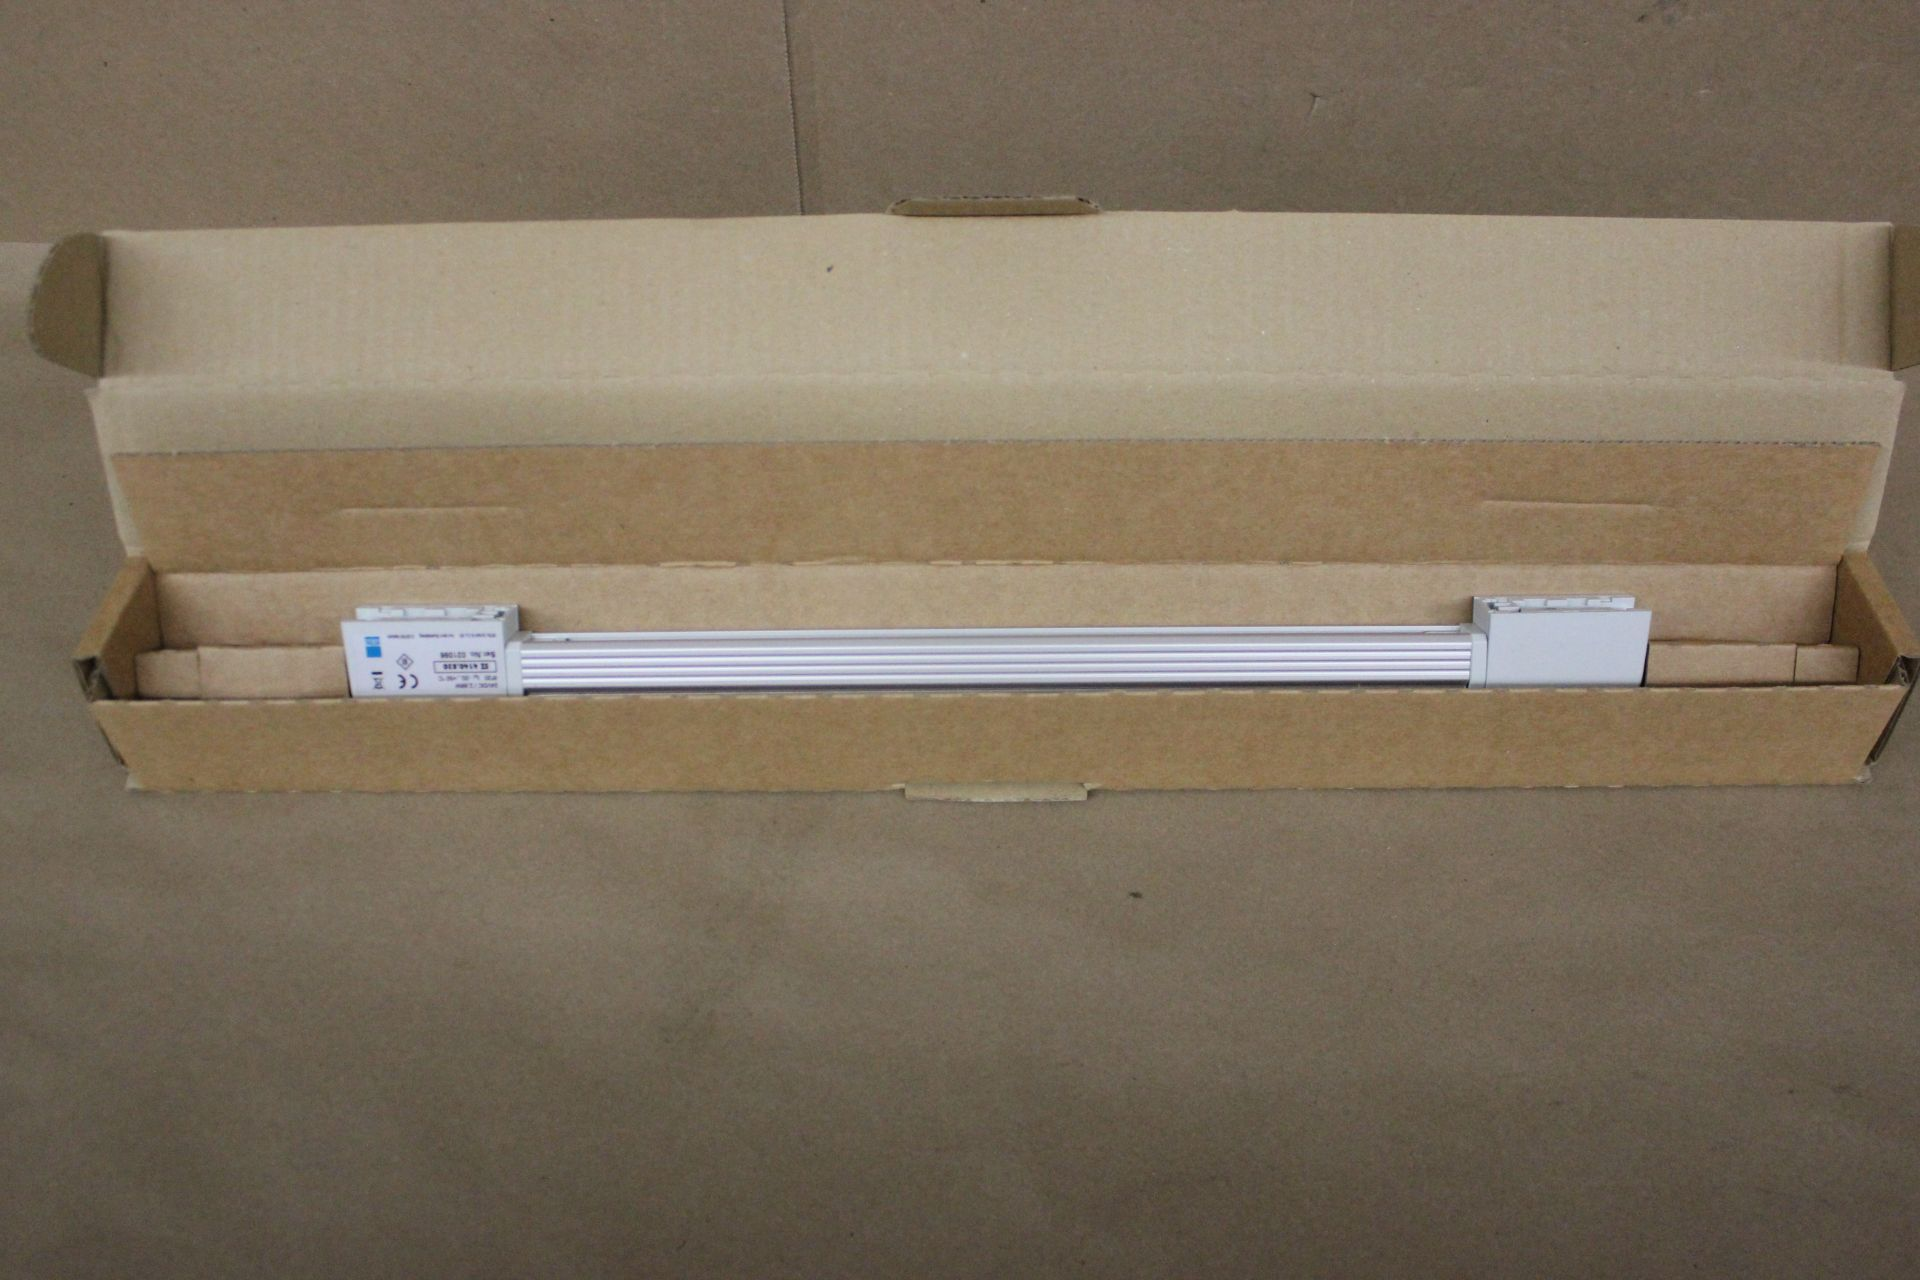 NEW RITTAL CABINET LED COMPACT LIGHT SYSTEM - Image 3 of 5